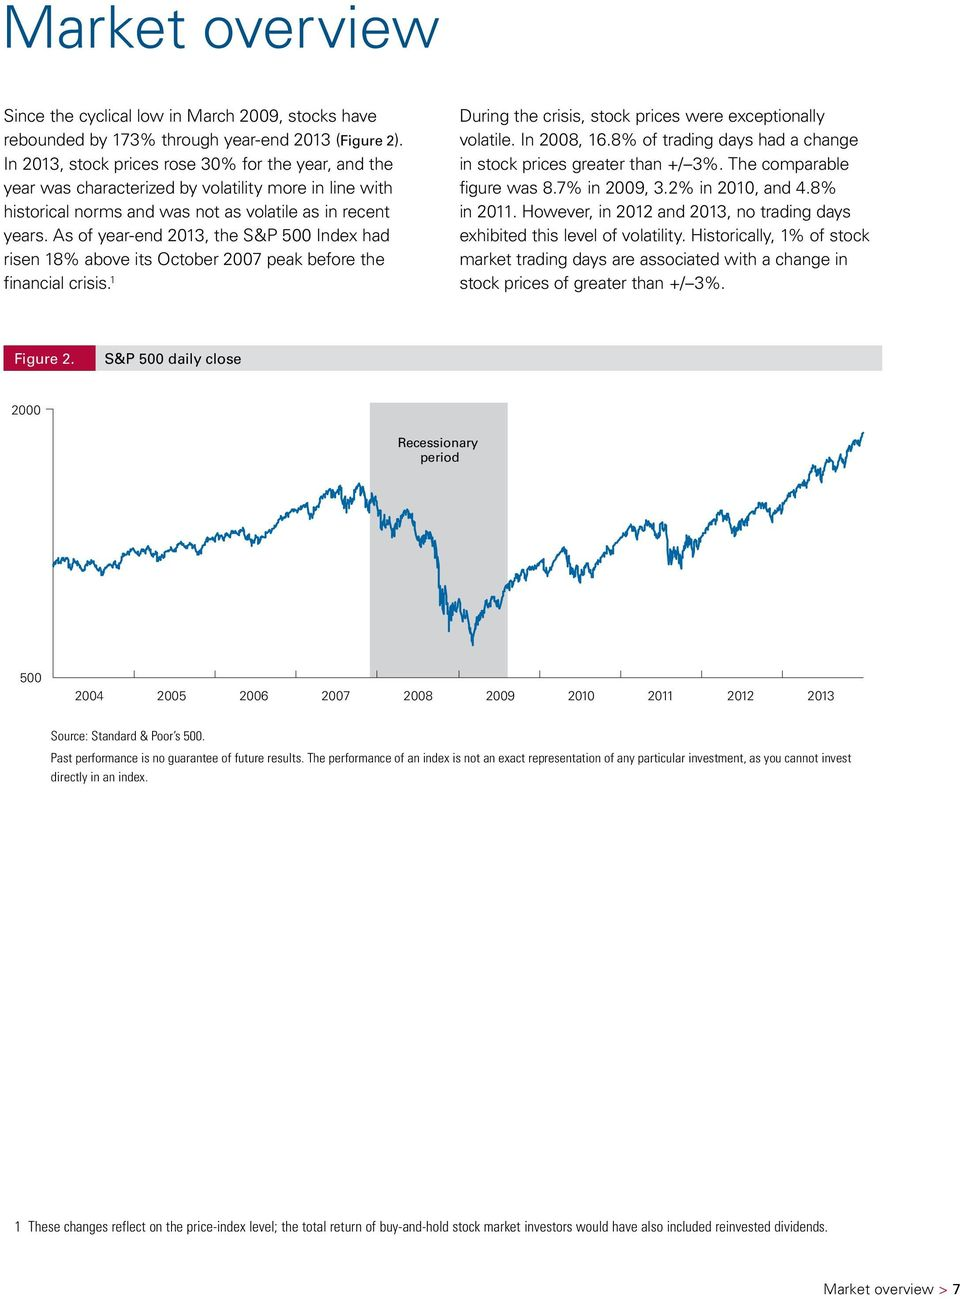 As of year-end 2013, the S&P 500 Index had risen 18% above its October 2007 peak before the financial crisis. 1 During the crisis, stock prices were exceptionally volatile. In 2008, 16.